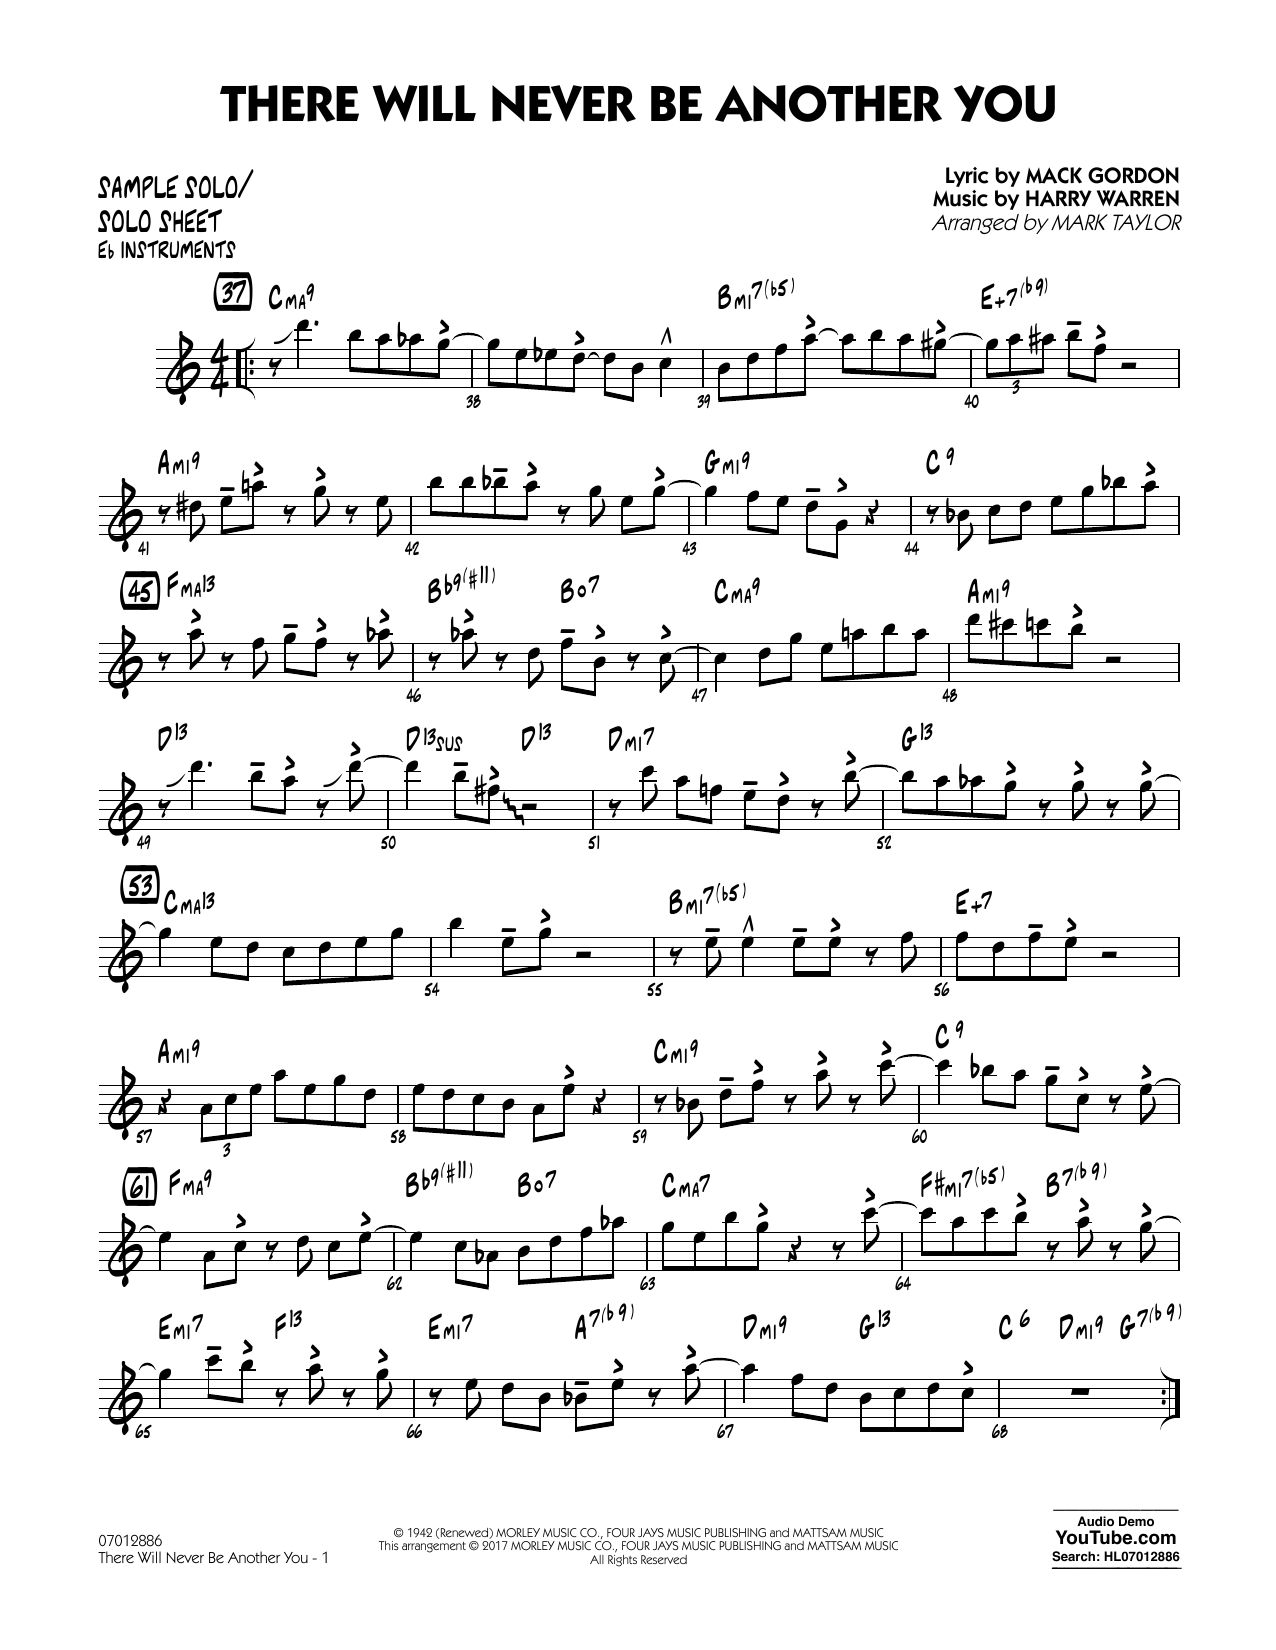 There Will Never Be Another You - Sample Solo/Solo Sheet Eb Inst Sheet Music